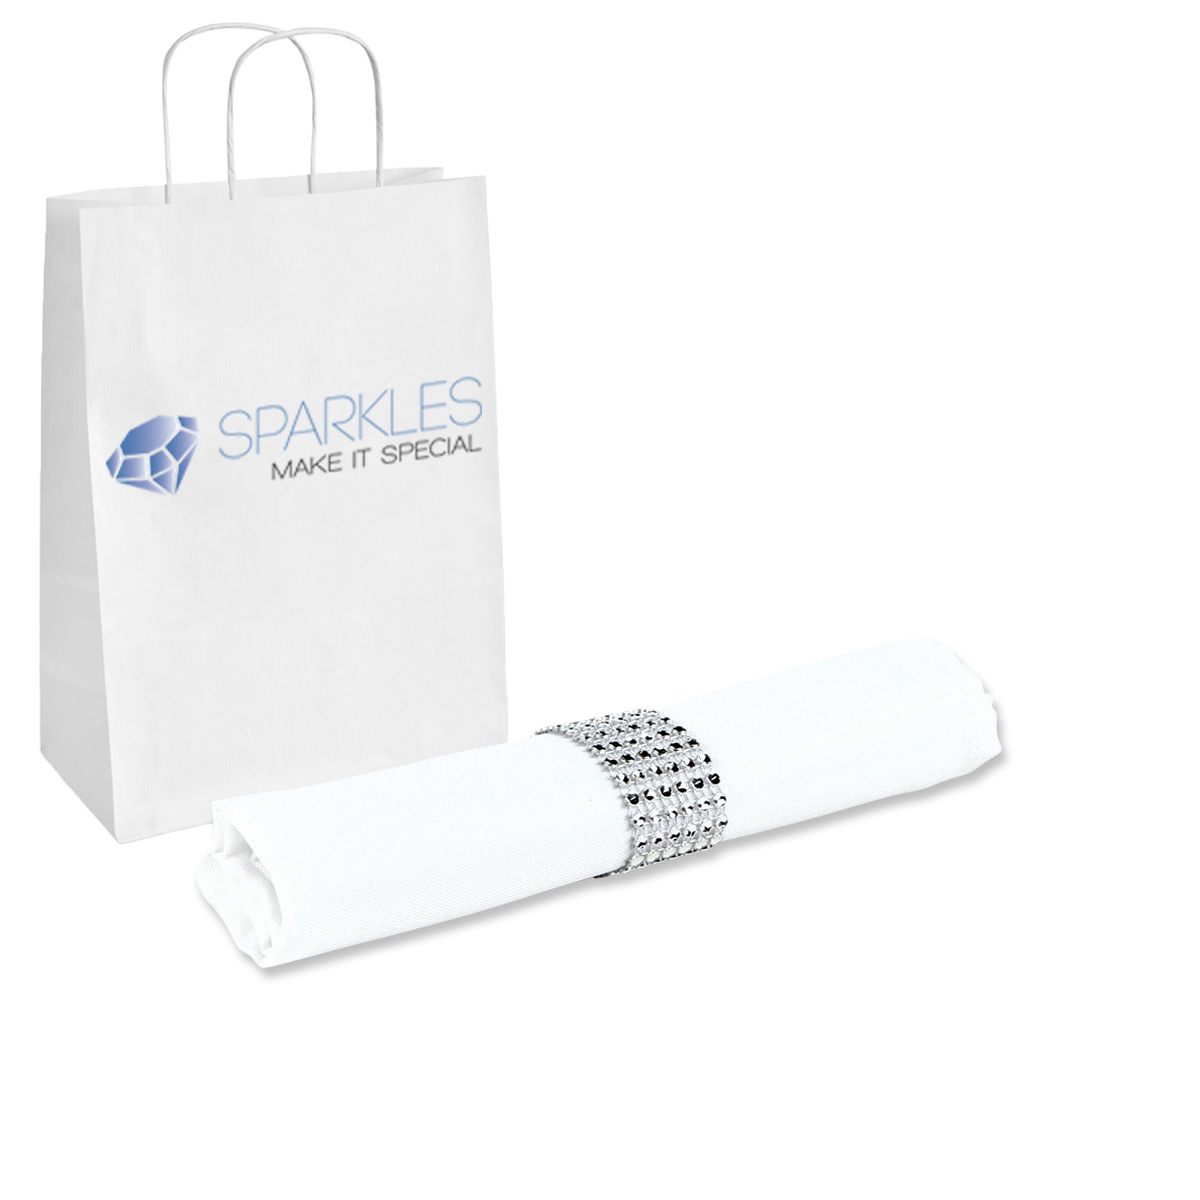 17-034-x17-034-or-20-034-x20-034-Cotton-Blend-Cloth-Linen-Dinner-Napkins-w-or-w-o-Napkin-Rings